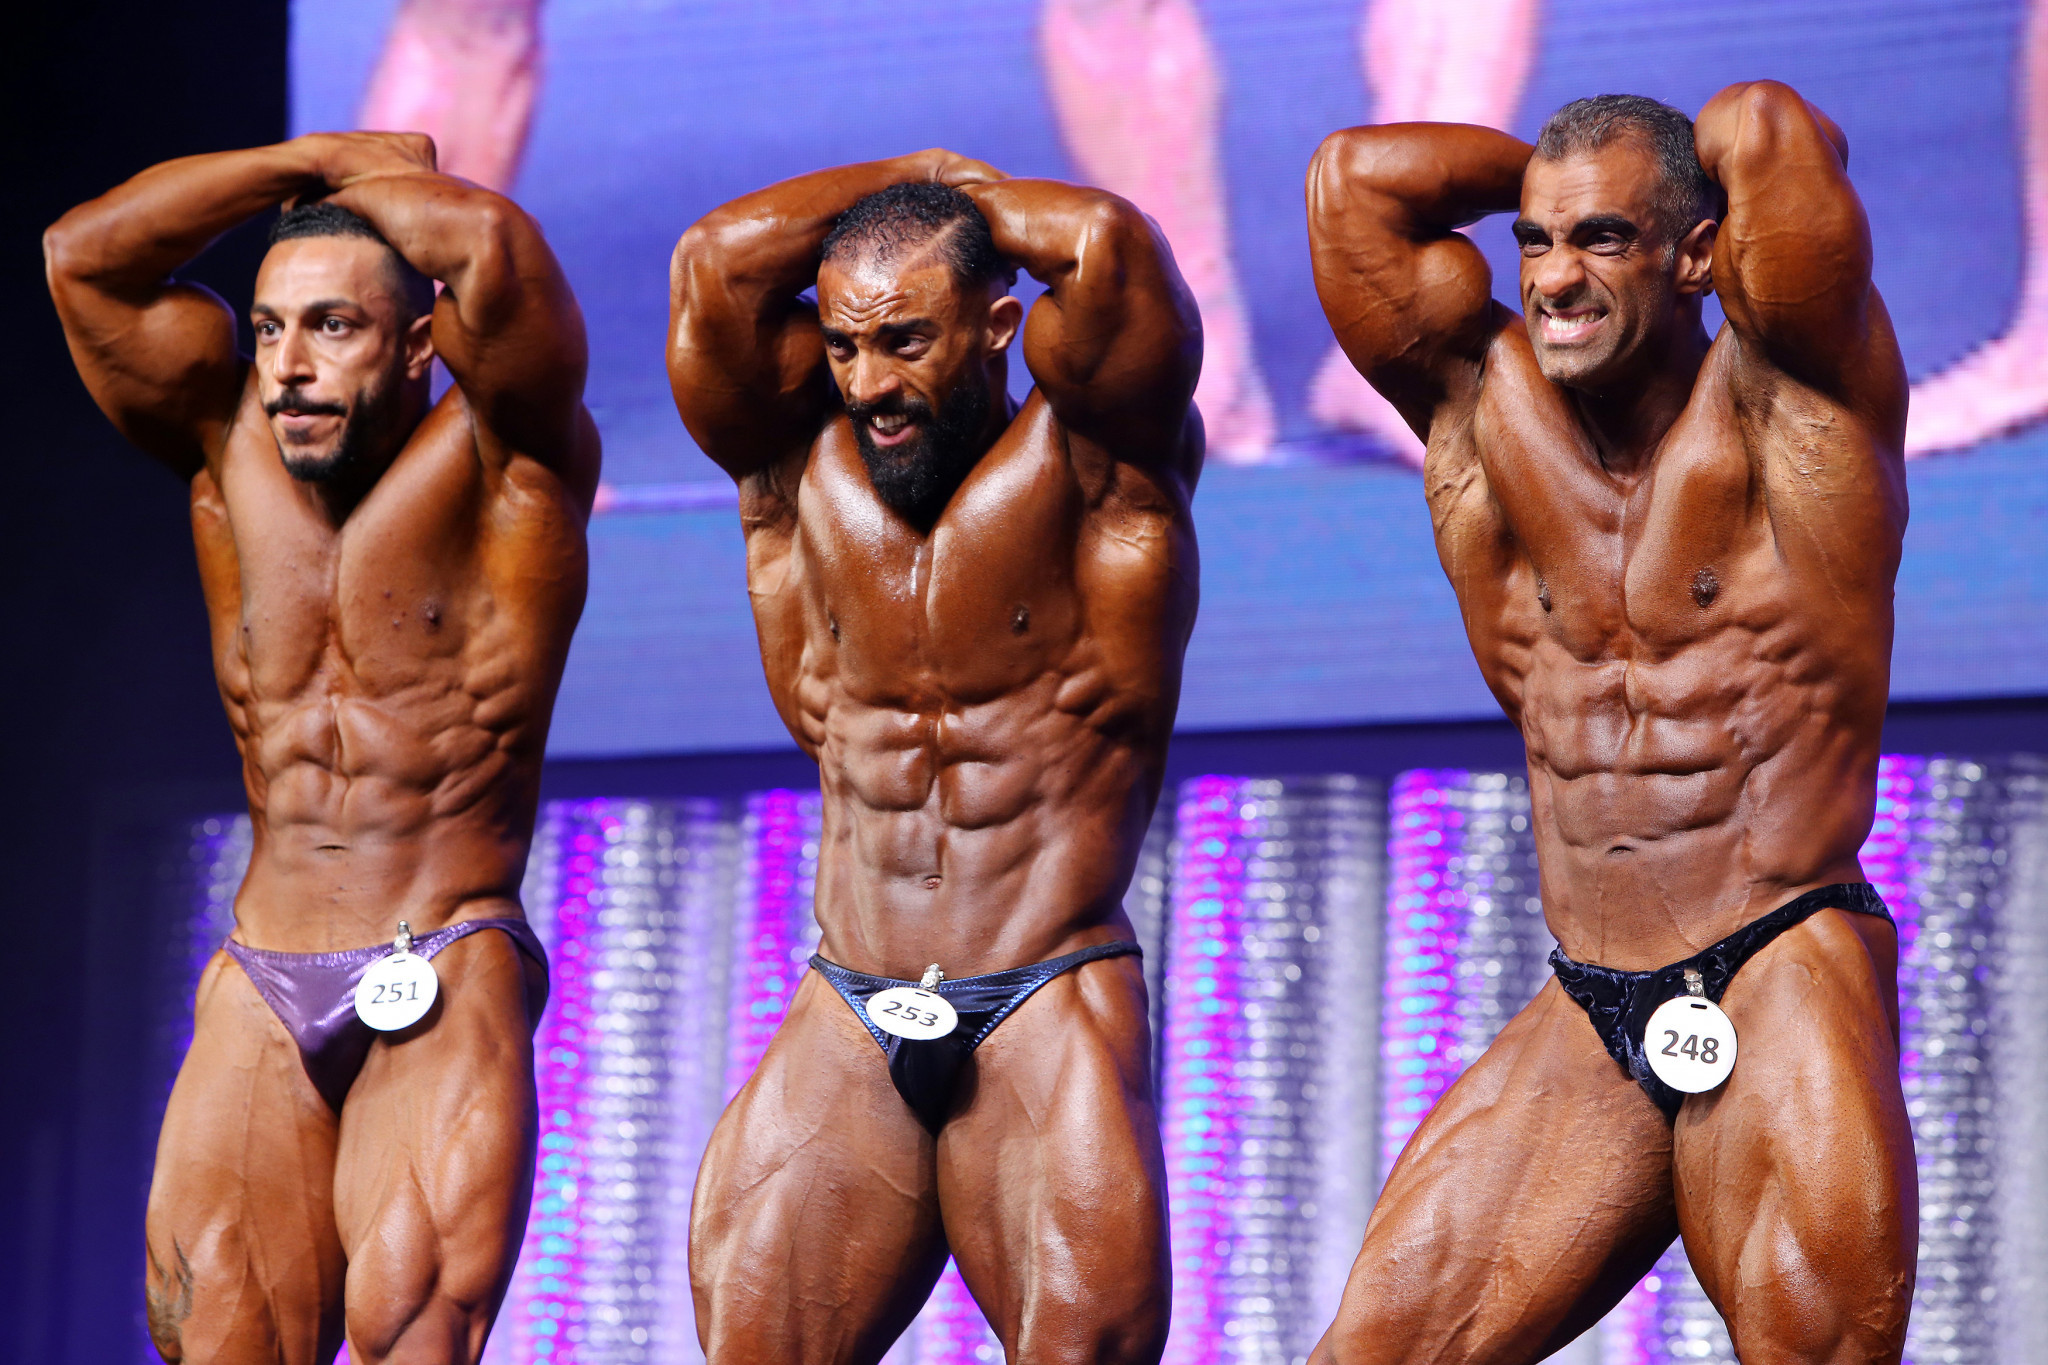 Bodybuilding is set to return as a discipline at the World Games in Birmingham in 2021 ©IFBB